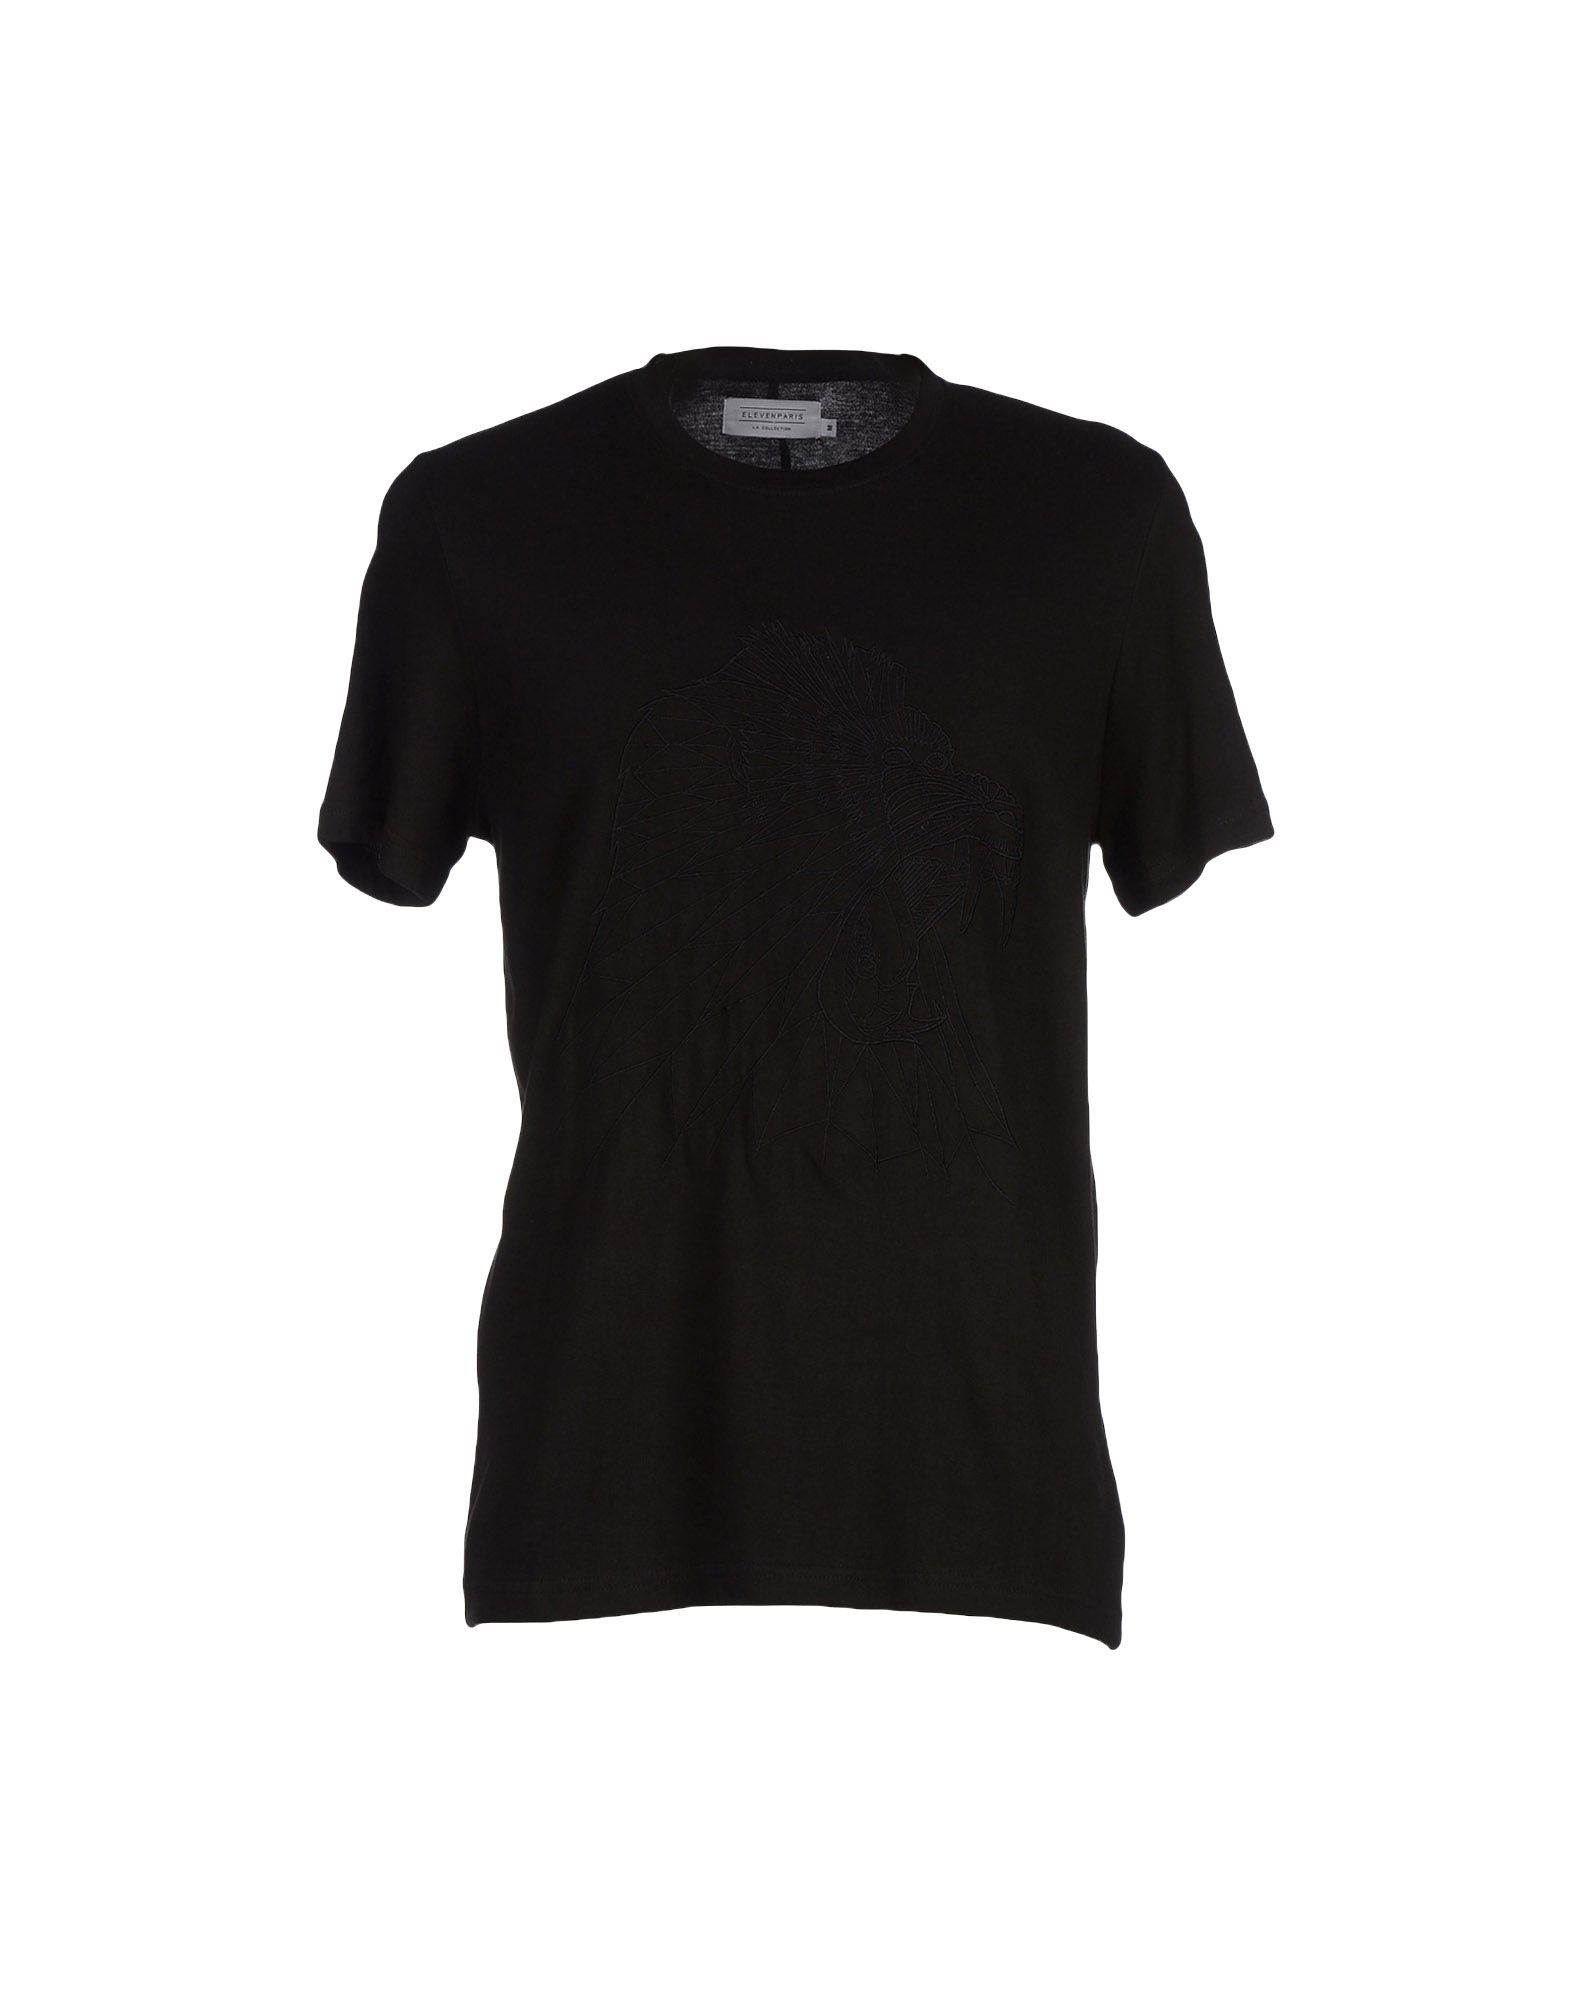 eleven paris t shirt in black for men lyst. Black Bedroom Furniture Sets. Home Design Ideas